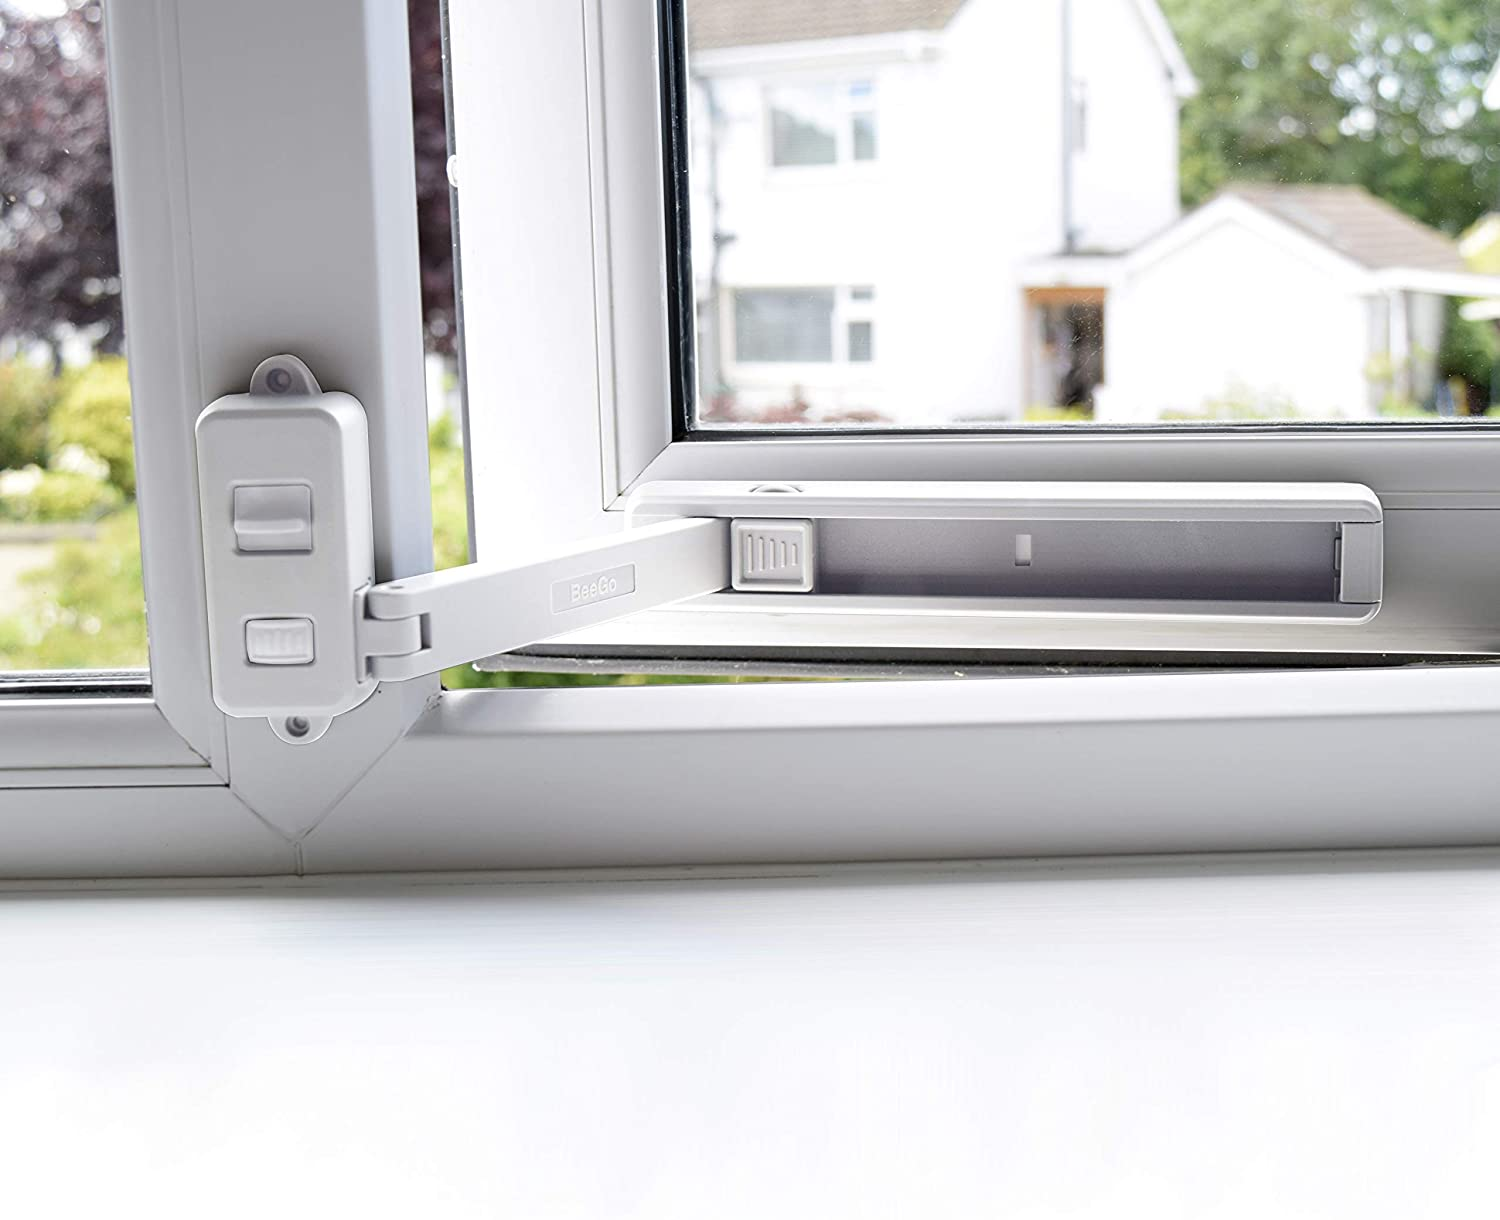 BeeGo Window Restrictors - Beego Child Safety Products